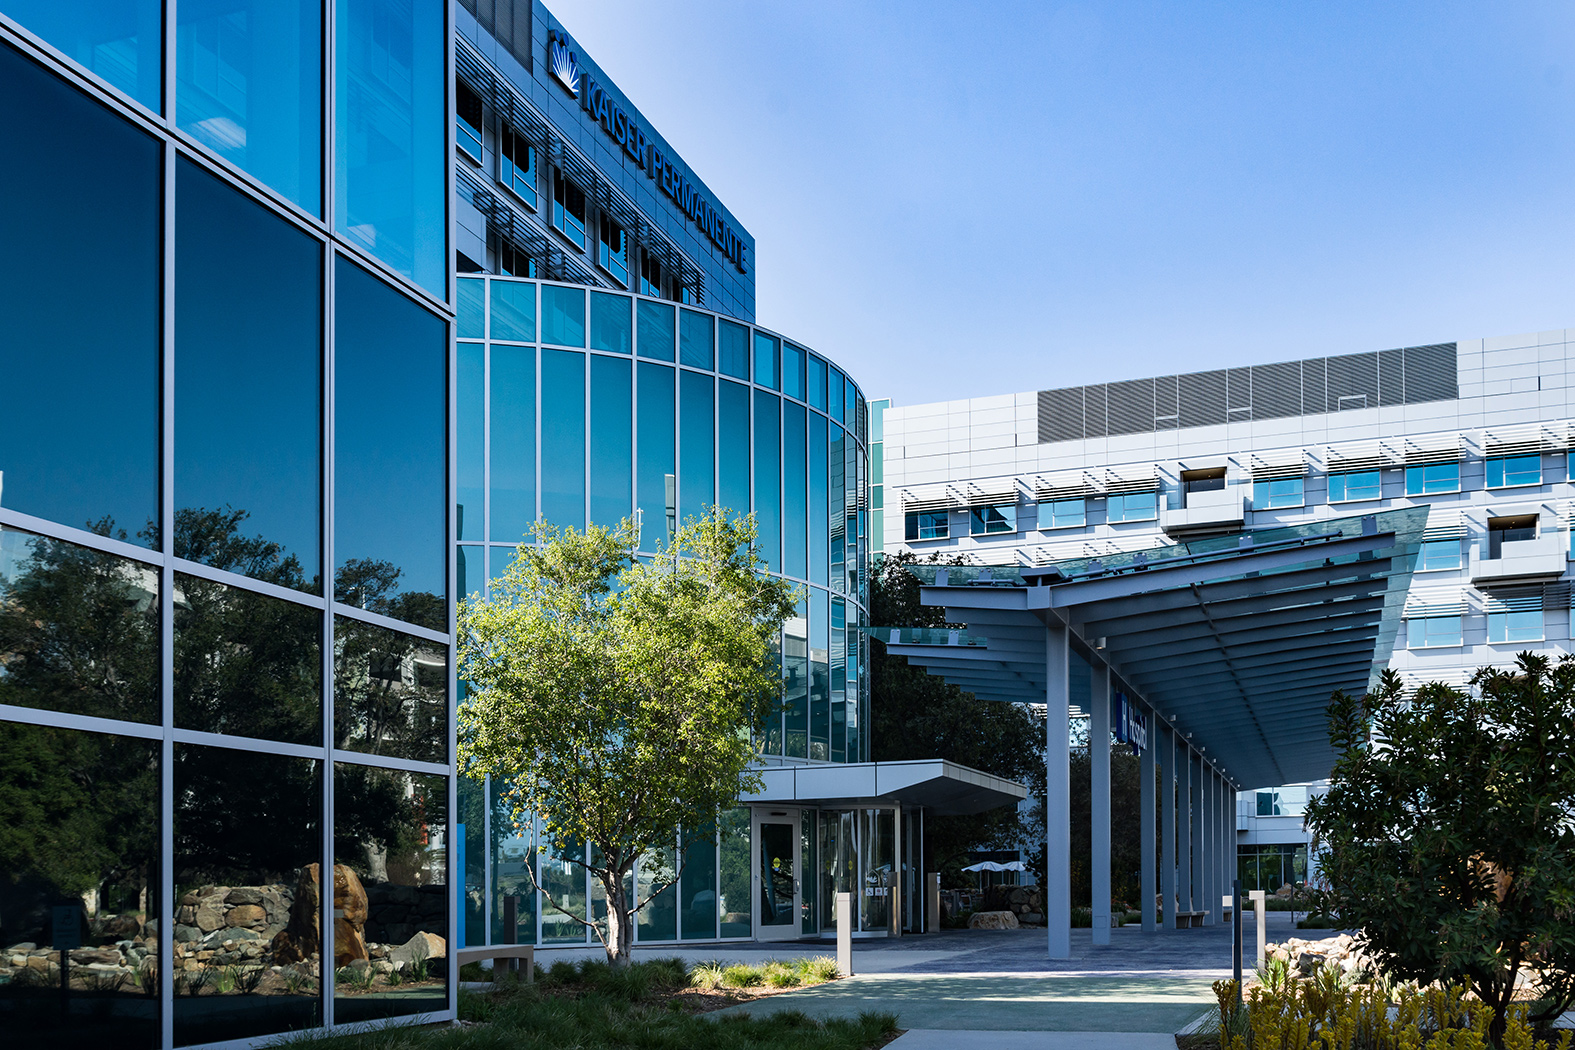 Kaiser S San Diego Medical Center Takes Cues From Design